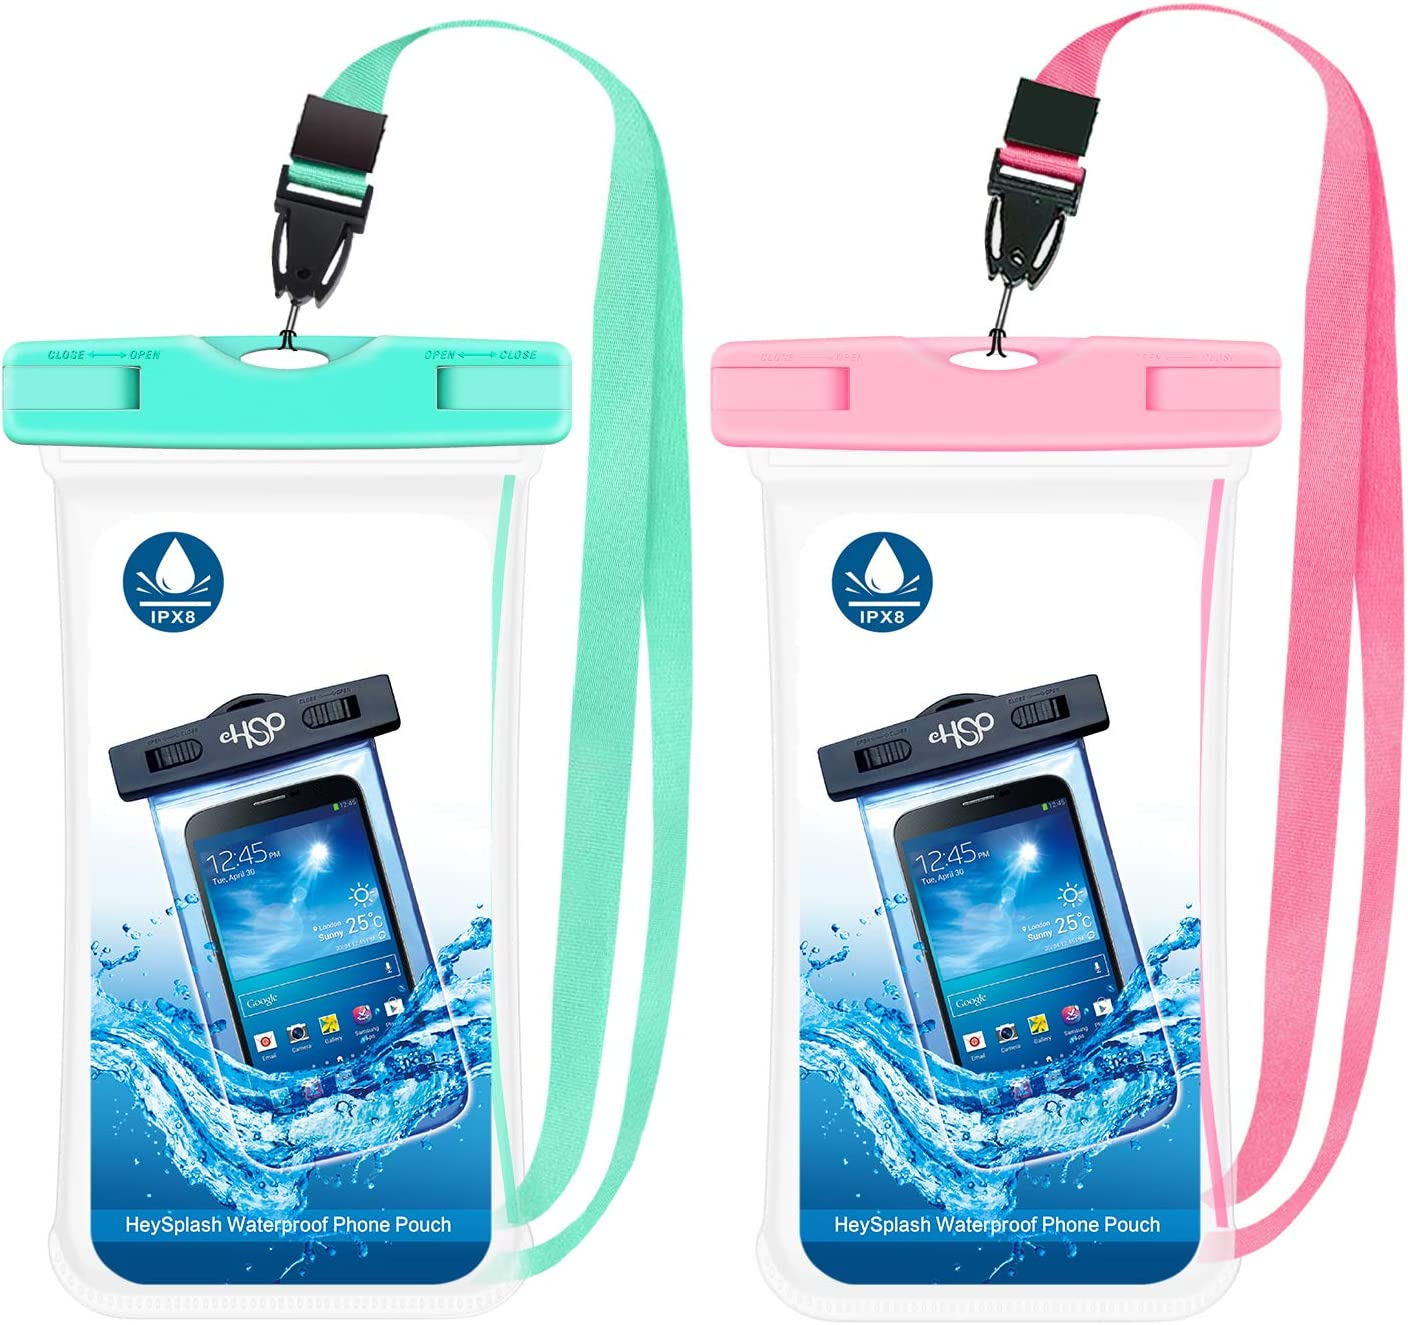 HeySplash Waterproof Phone Case, [2 Pack] IPX8 Wateproof Underwater Cellphone Pouch for Beach SUP or Bathing Dry Bag with Lanyard Fit with iPhone 12/12 mini/12 Pro/Pro Max/11 Pro Max/XS Max/11/XR/SE